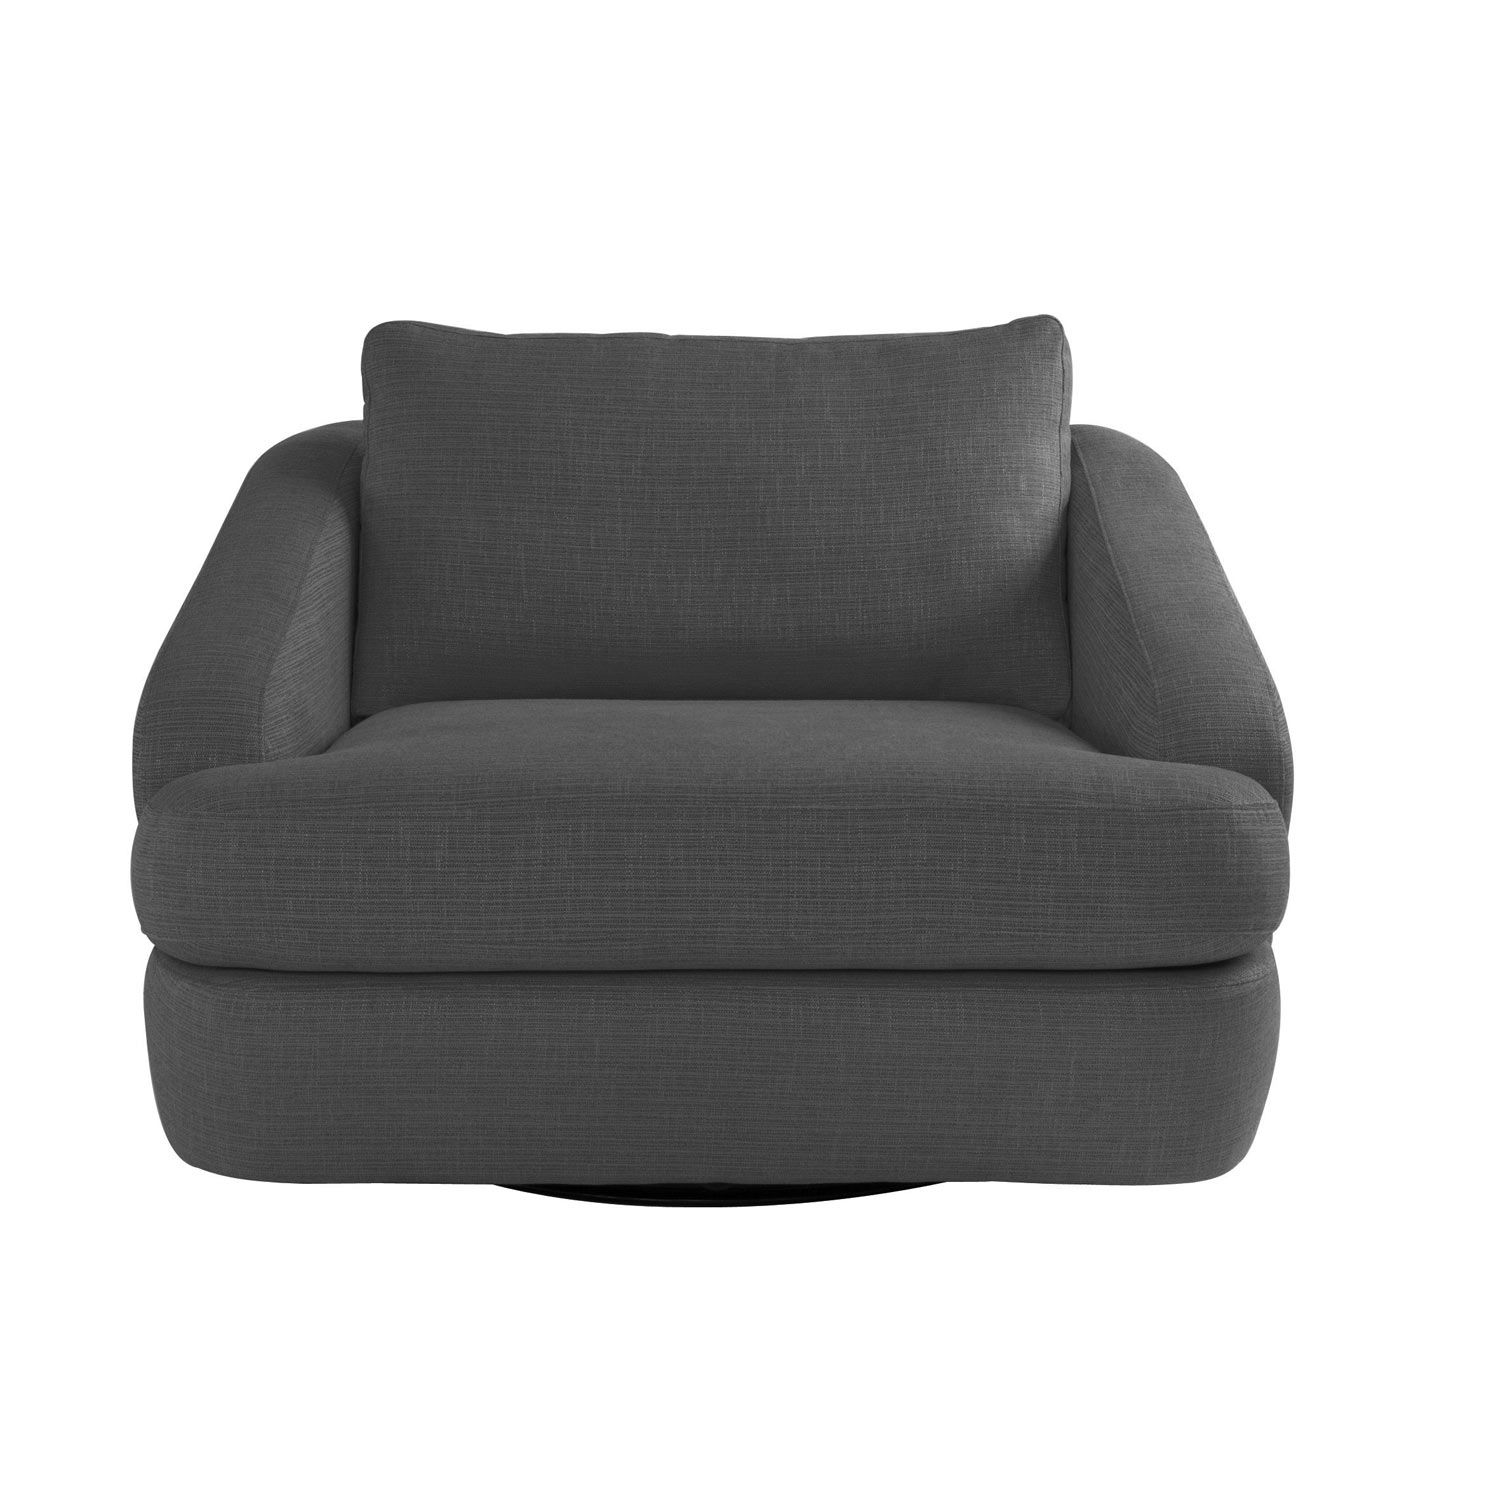 sofa img gray com accent loveseat totocizaragoza plus swivel